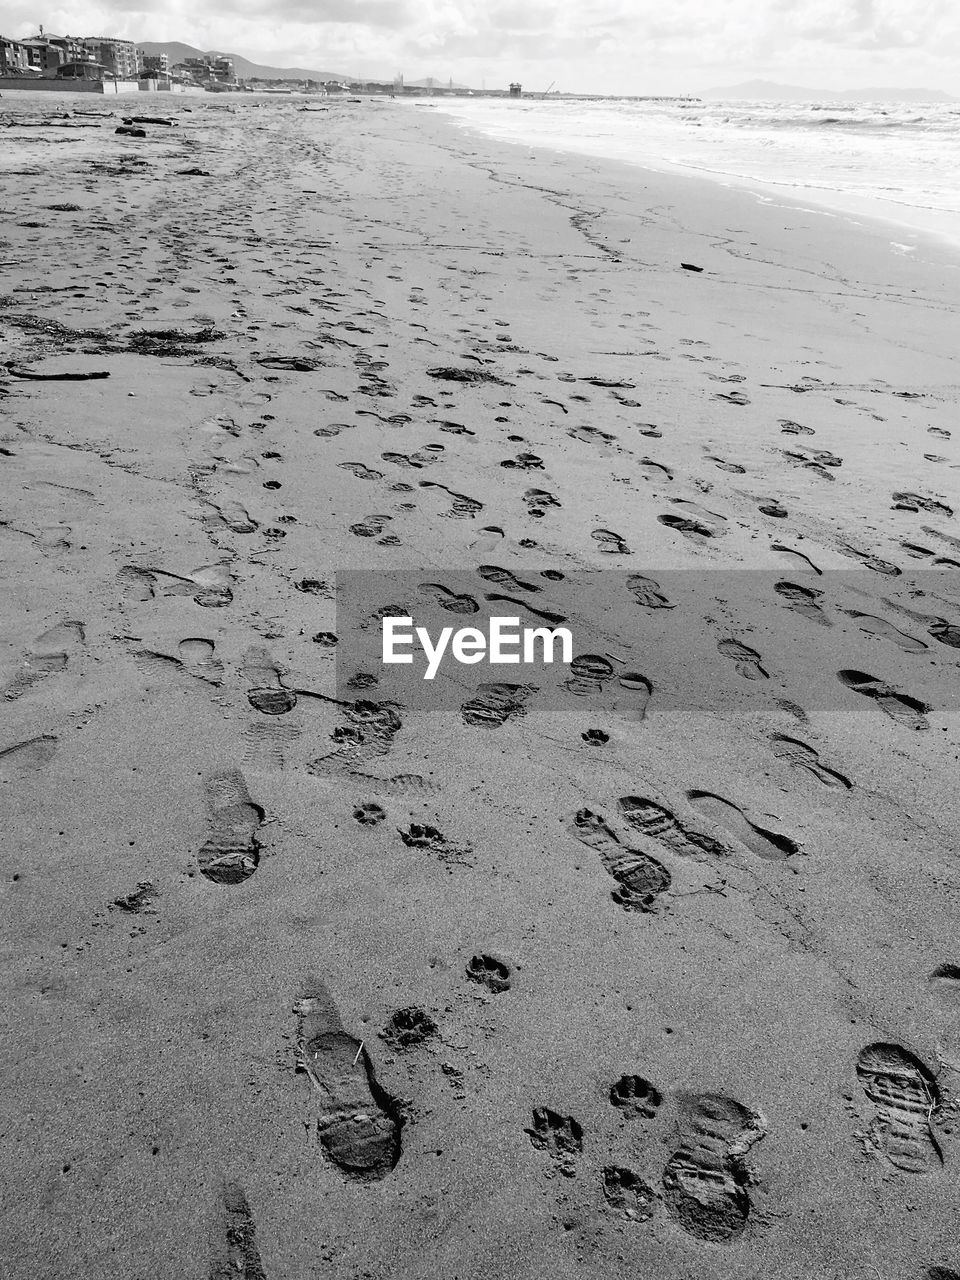 beach, sand, shore, footprint, paw print, nature, no people, outdoors, sea, day, tranquility, water, close-up, beauty in nature, sky